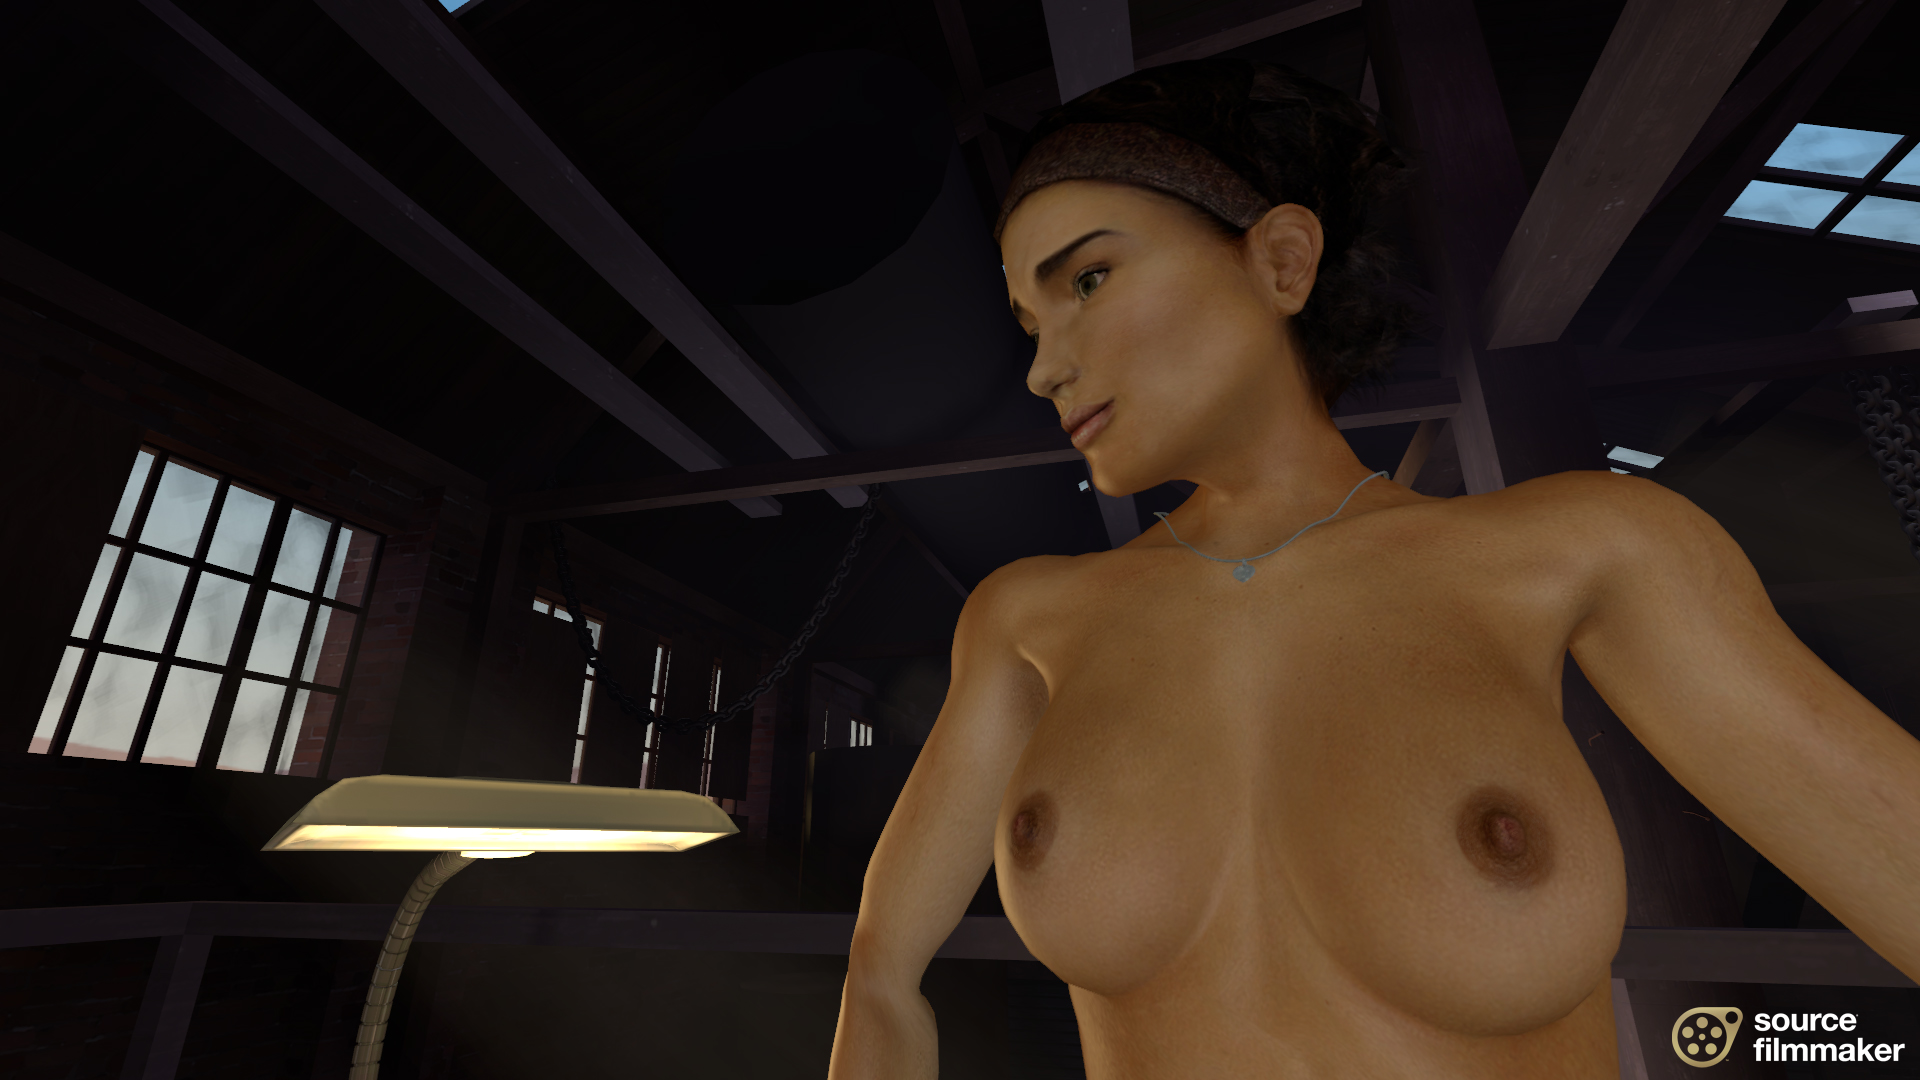 Hellgate london hd nude patch sex images